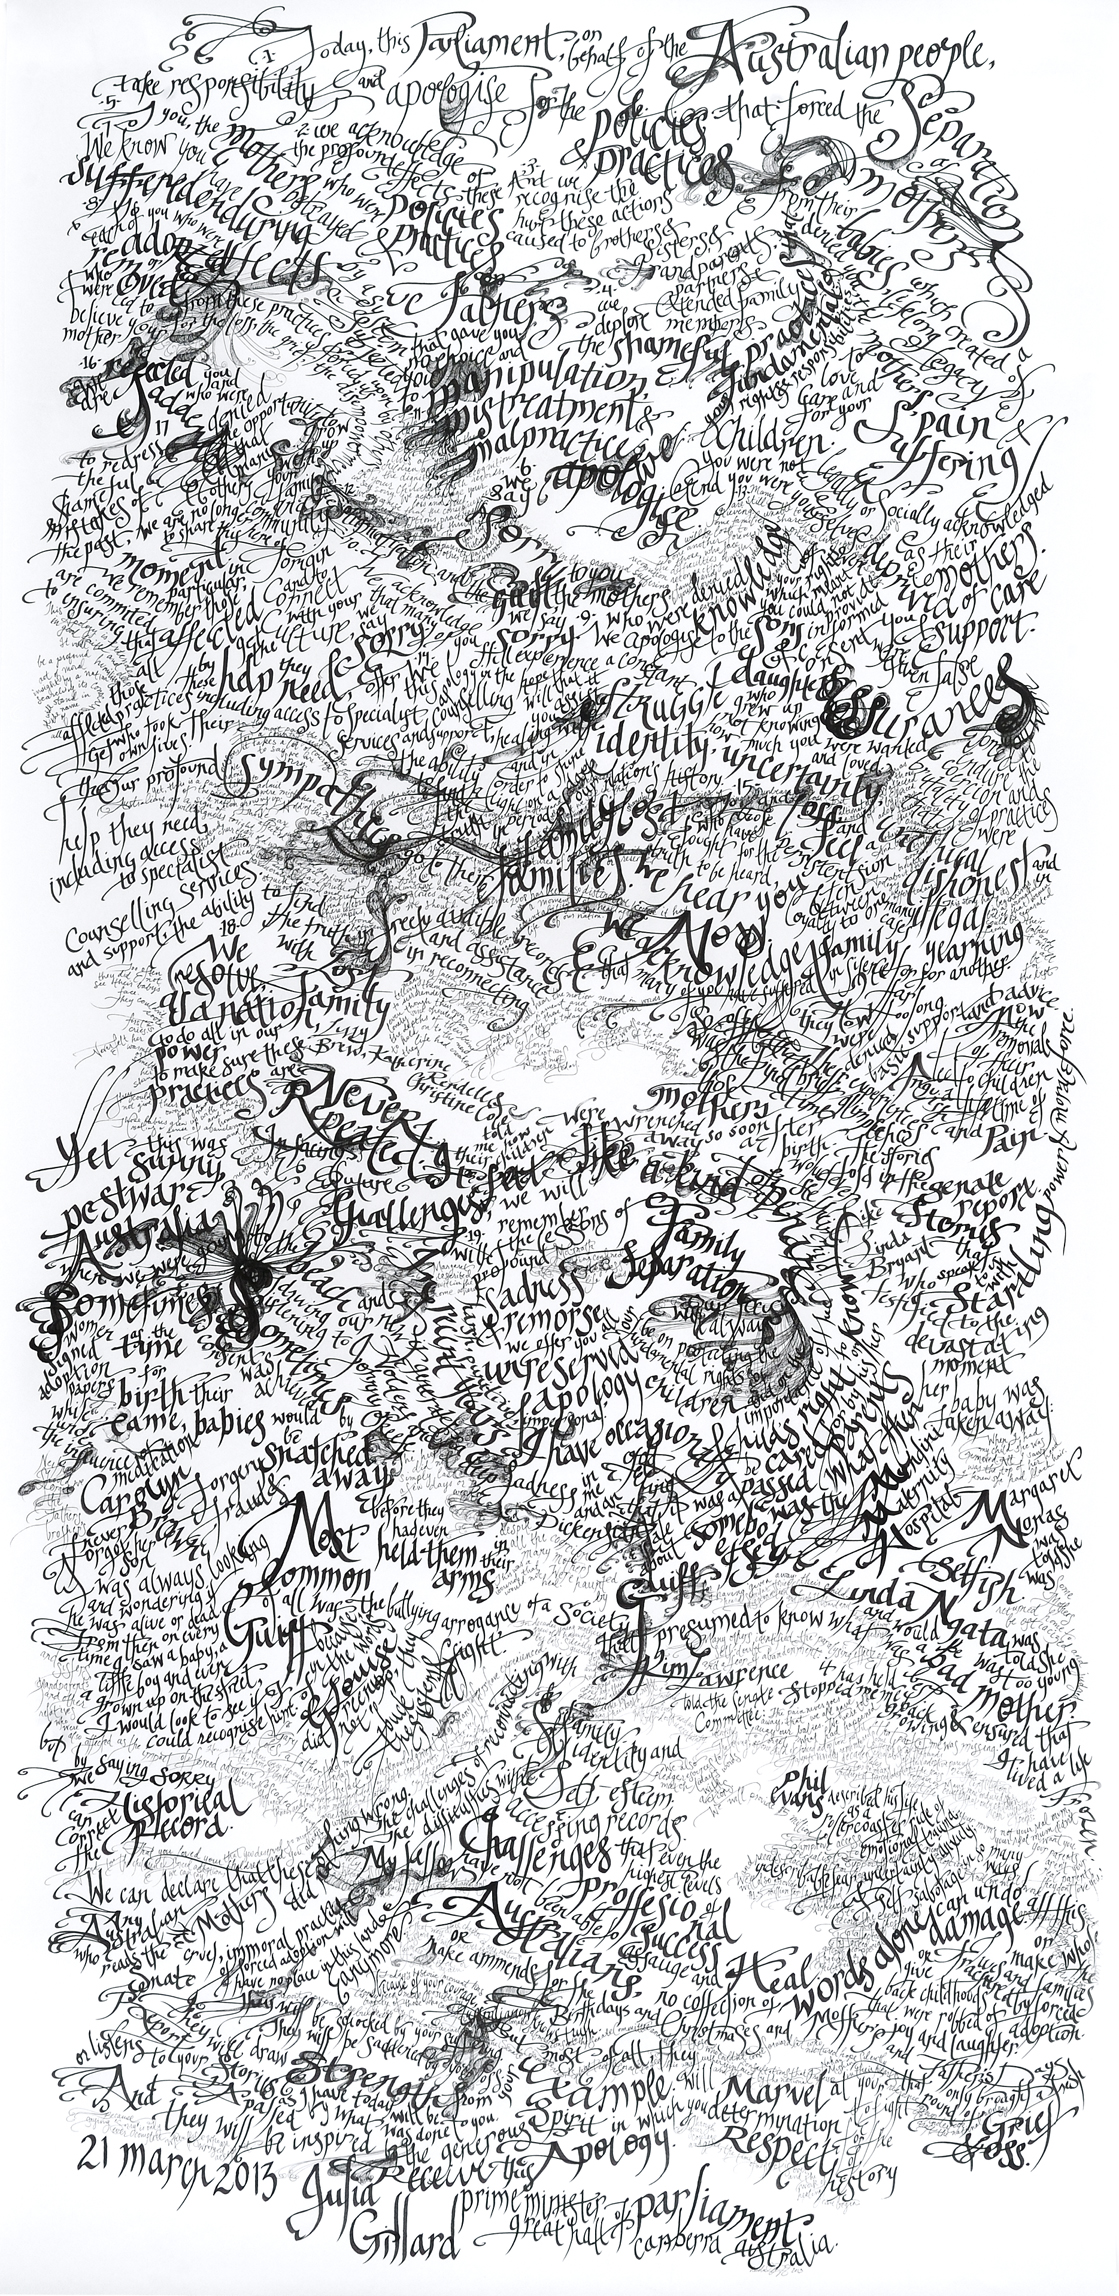 National Apology for Forced Adoptions, 2013 (66 x 34 in)